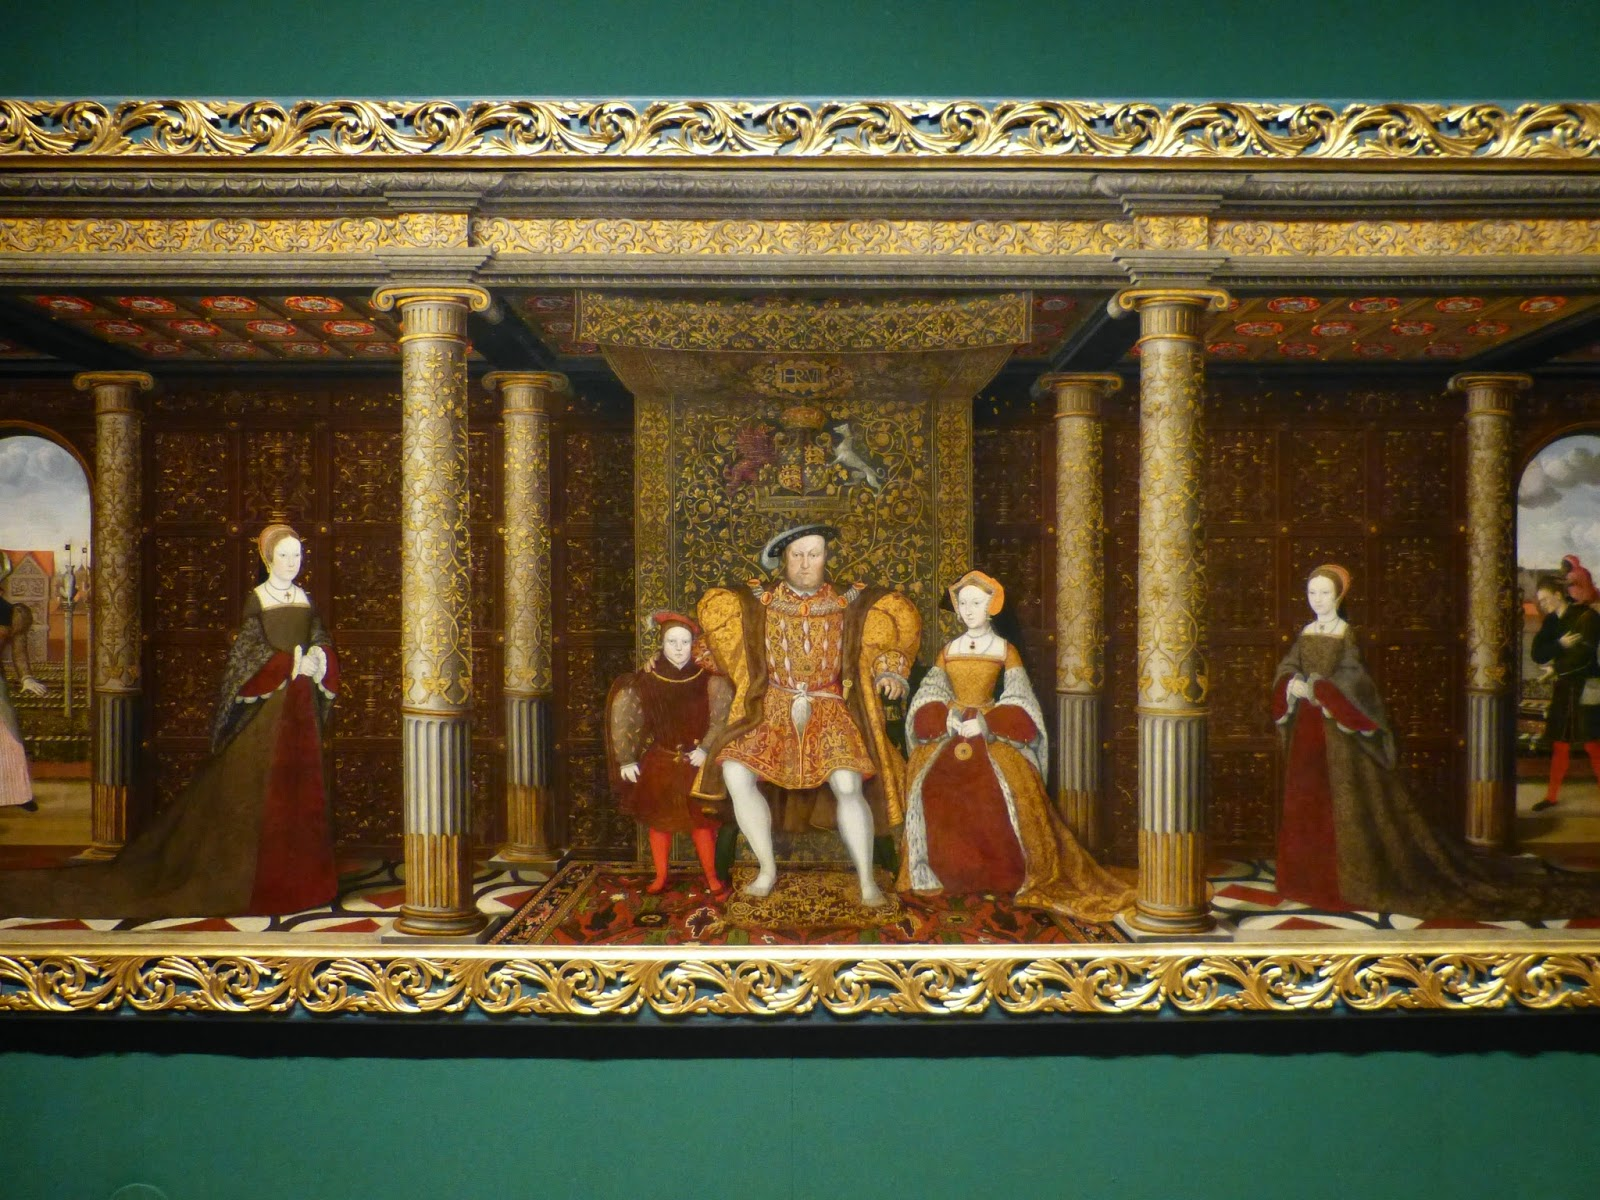 Detail from Family of Henry VIII by British School (c1545)  showing Great Garden at Whitehall Palace in background